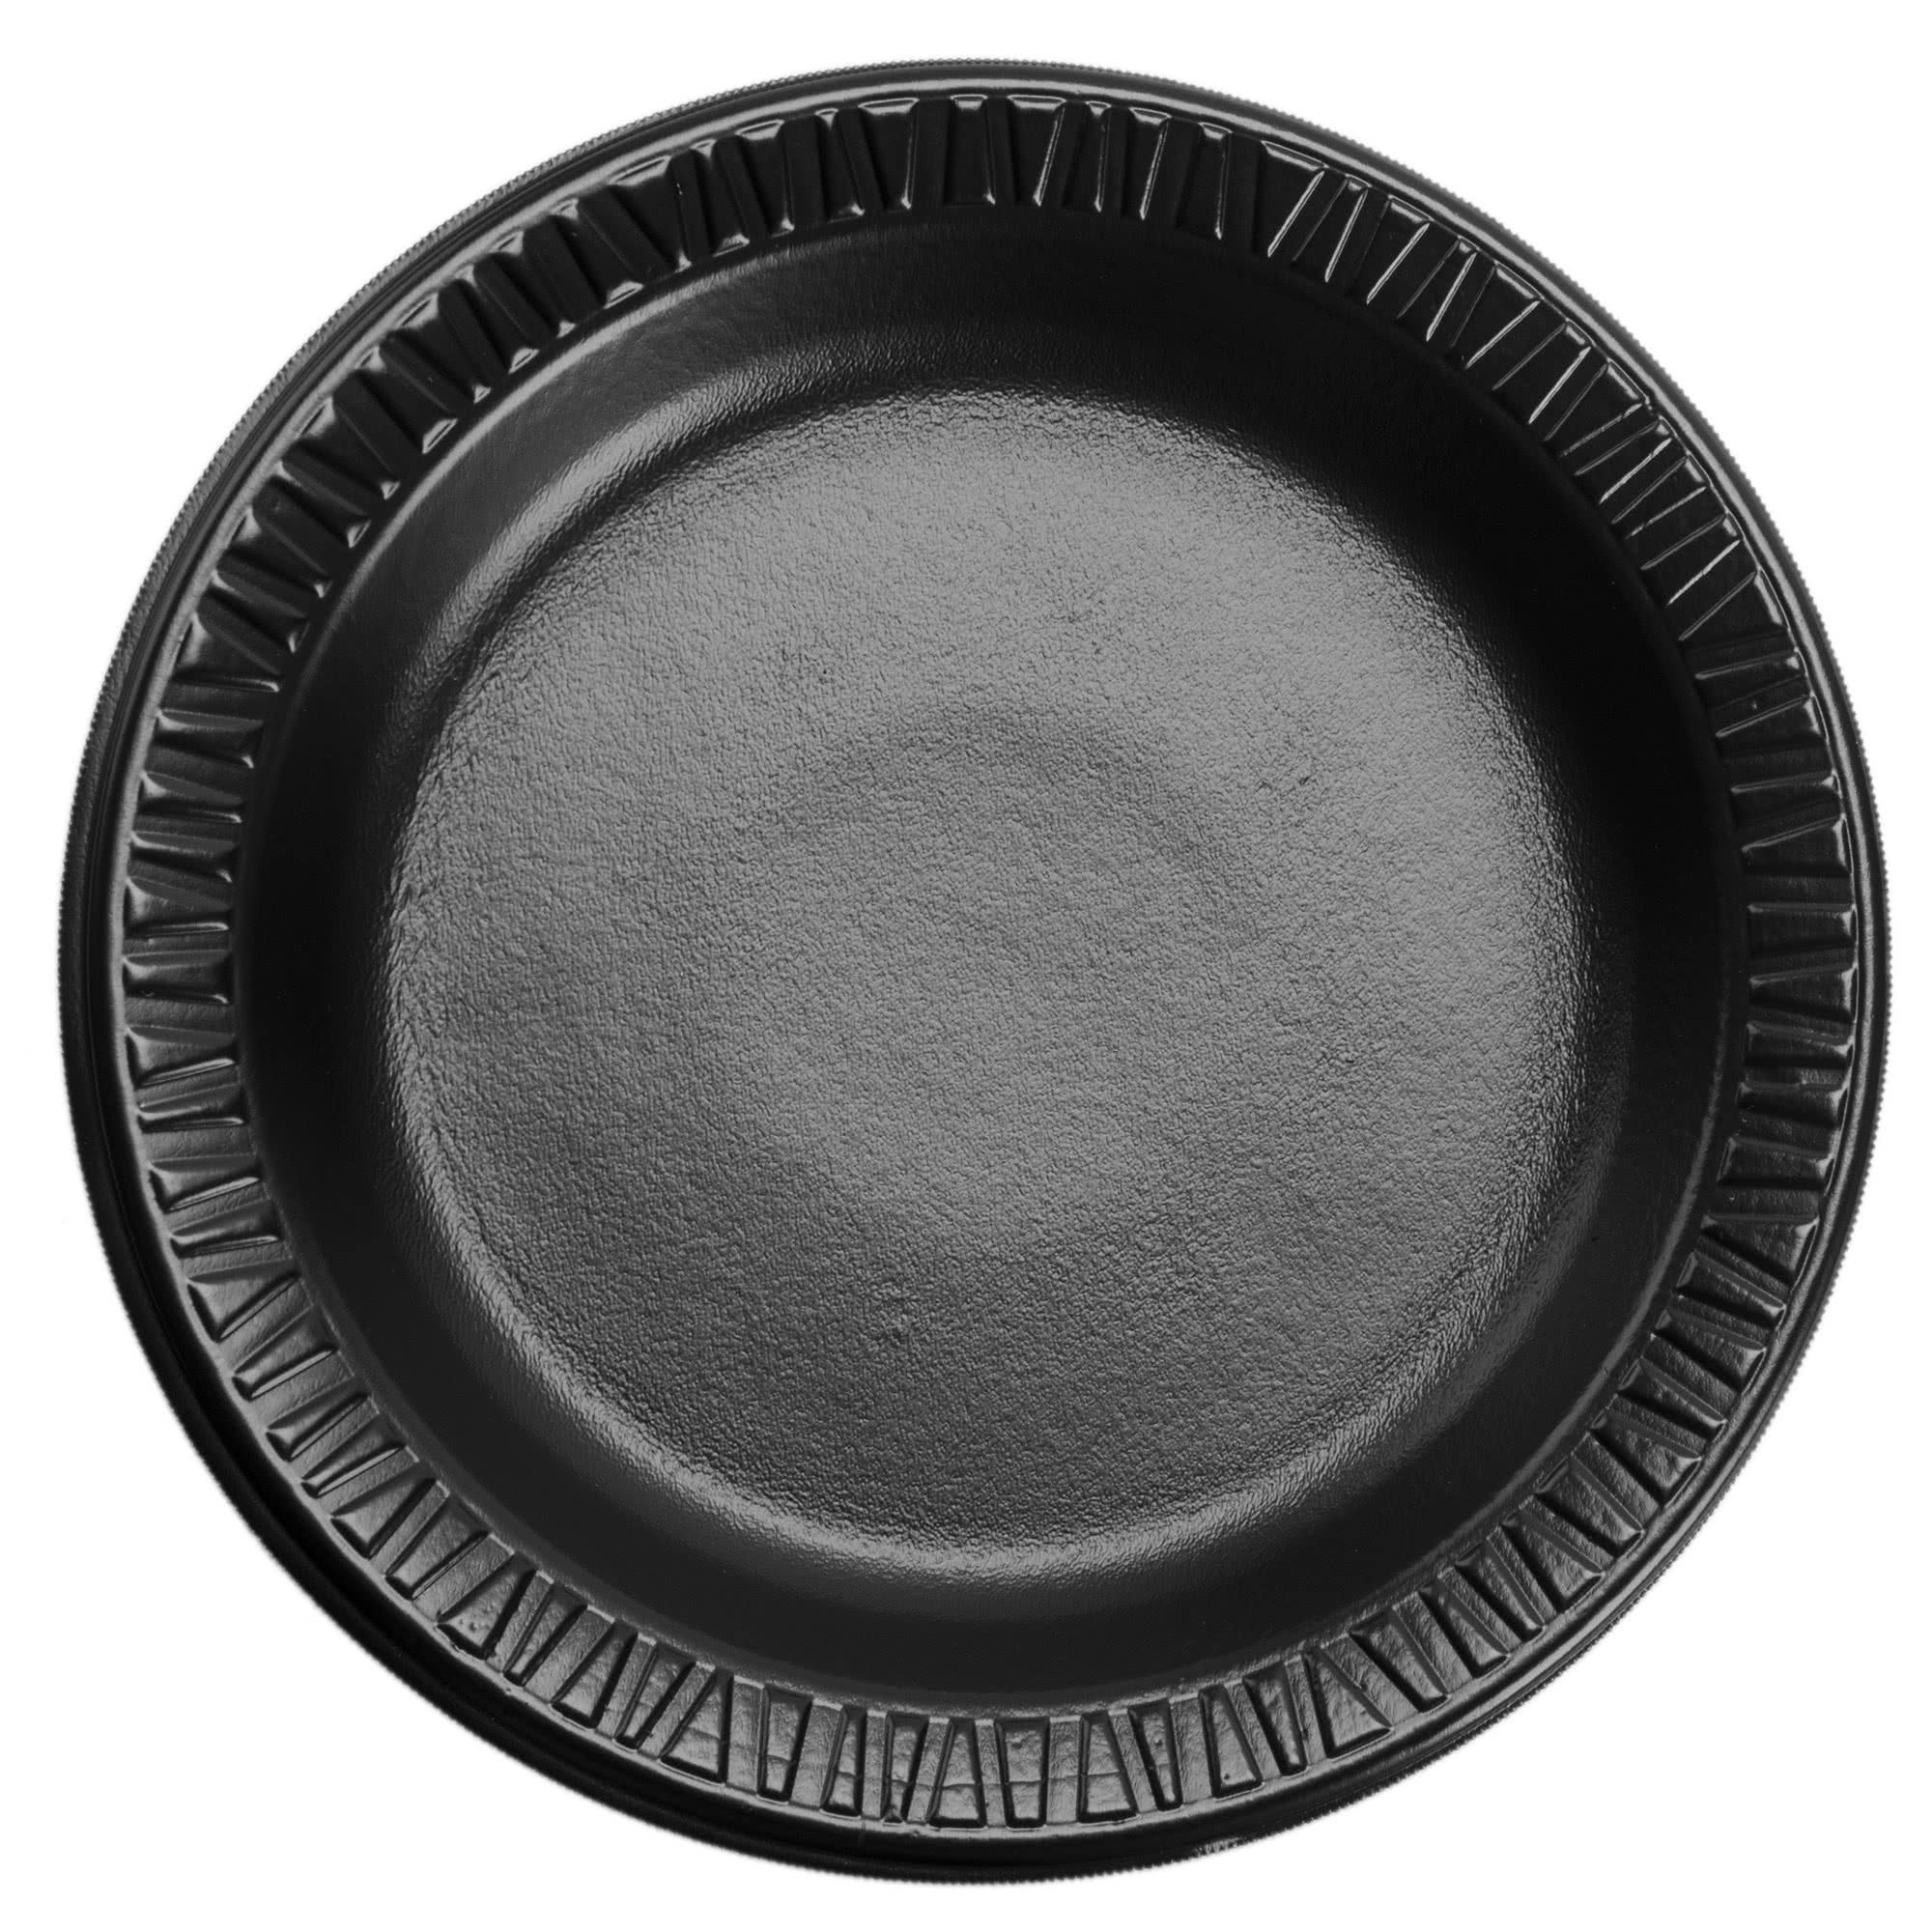 TableTop King 6PBQR Quiet Classic 6'' Black Laminated Round Foam Plate - 1000/Case by TableTop King